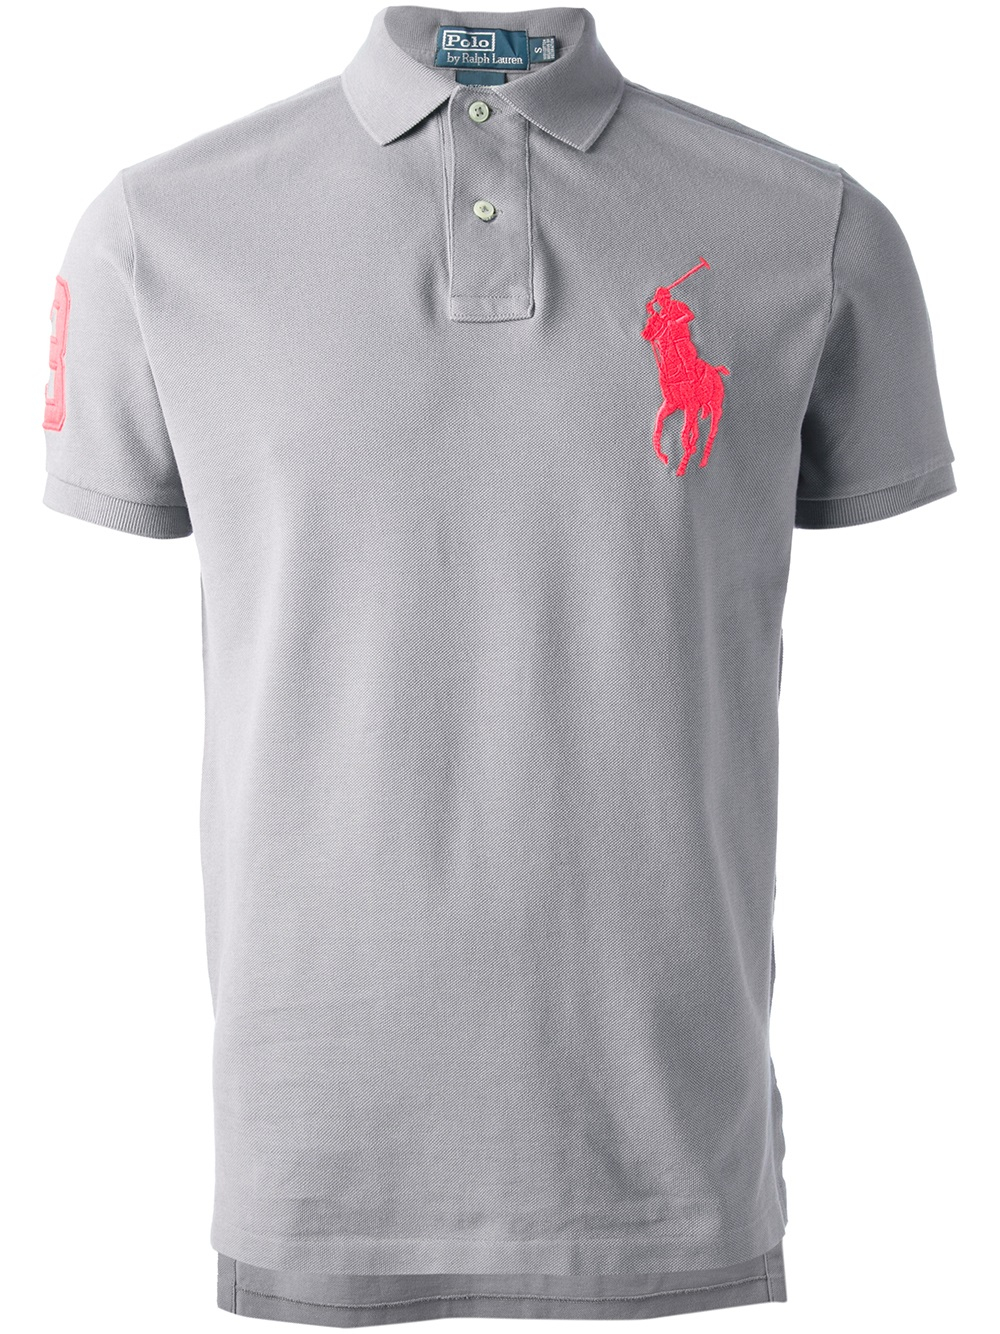 Lyst polo ralph lauren logo polo shirt in gray for men for Polo shirts with logos